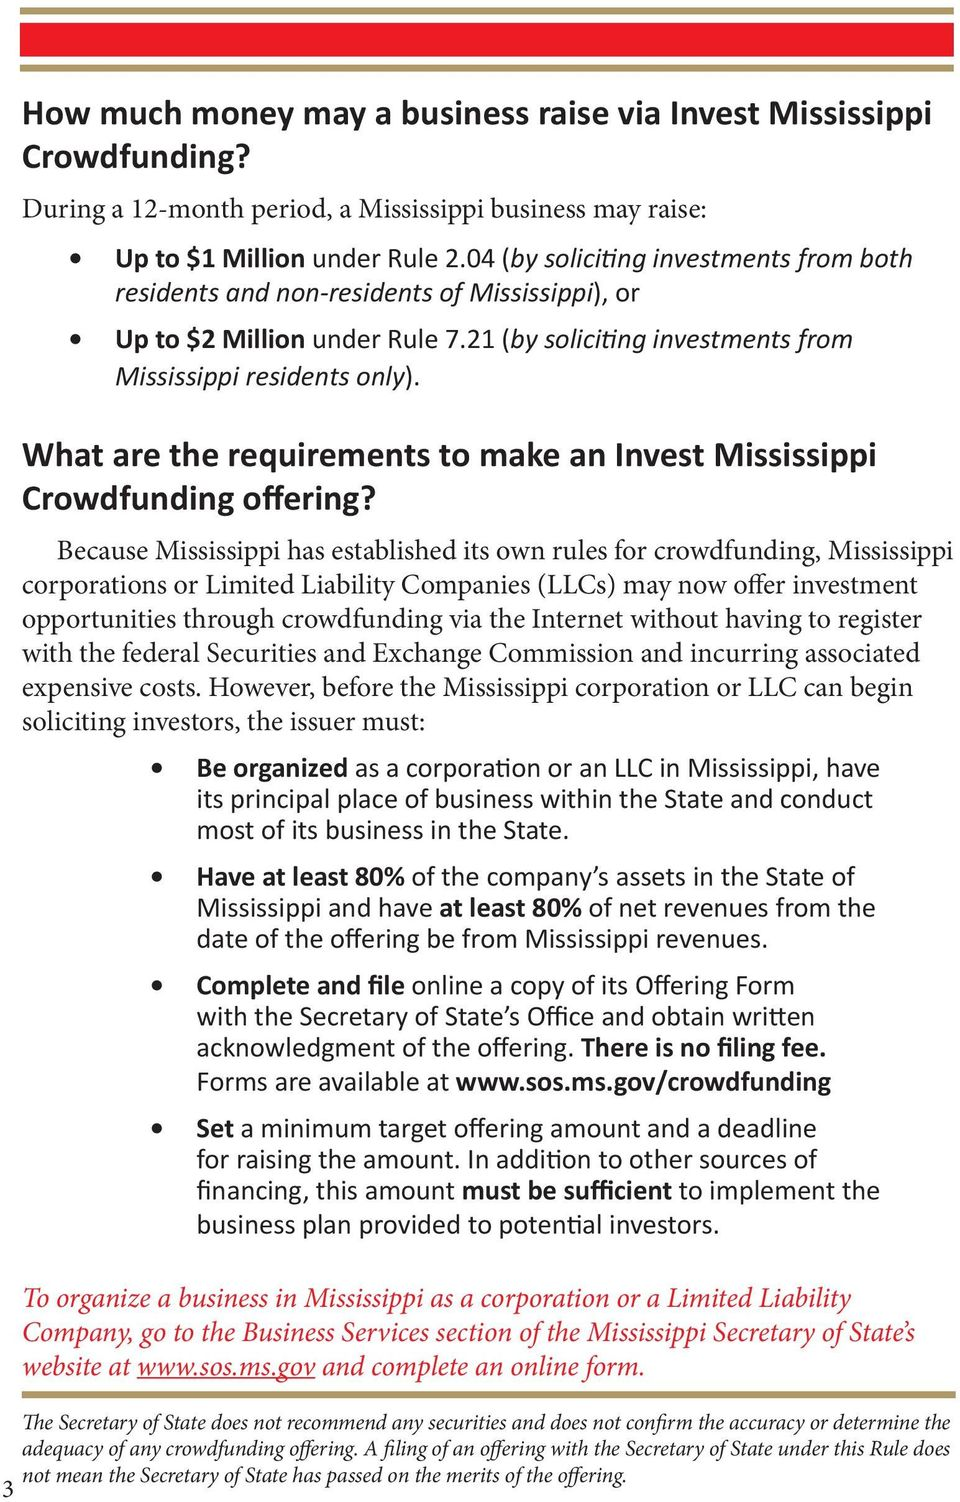 What are the requirements to make an Invest Mississippi Crowdfunding offering?